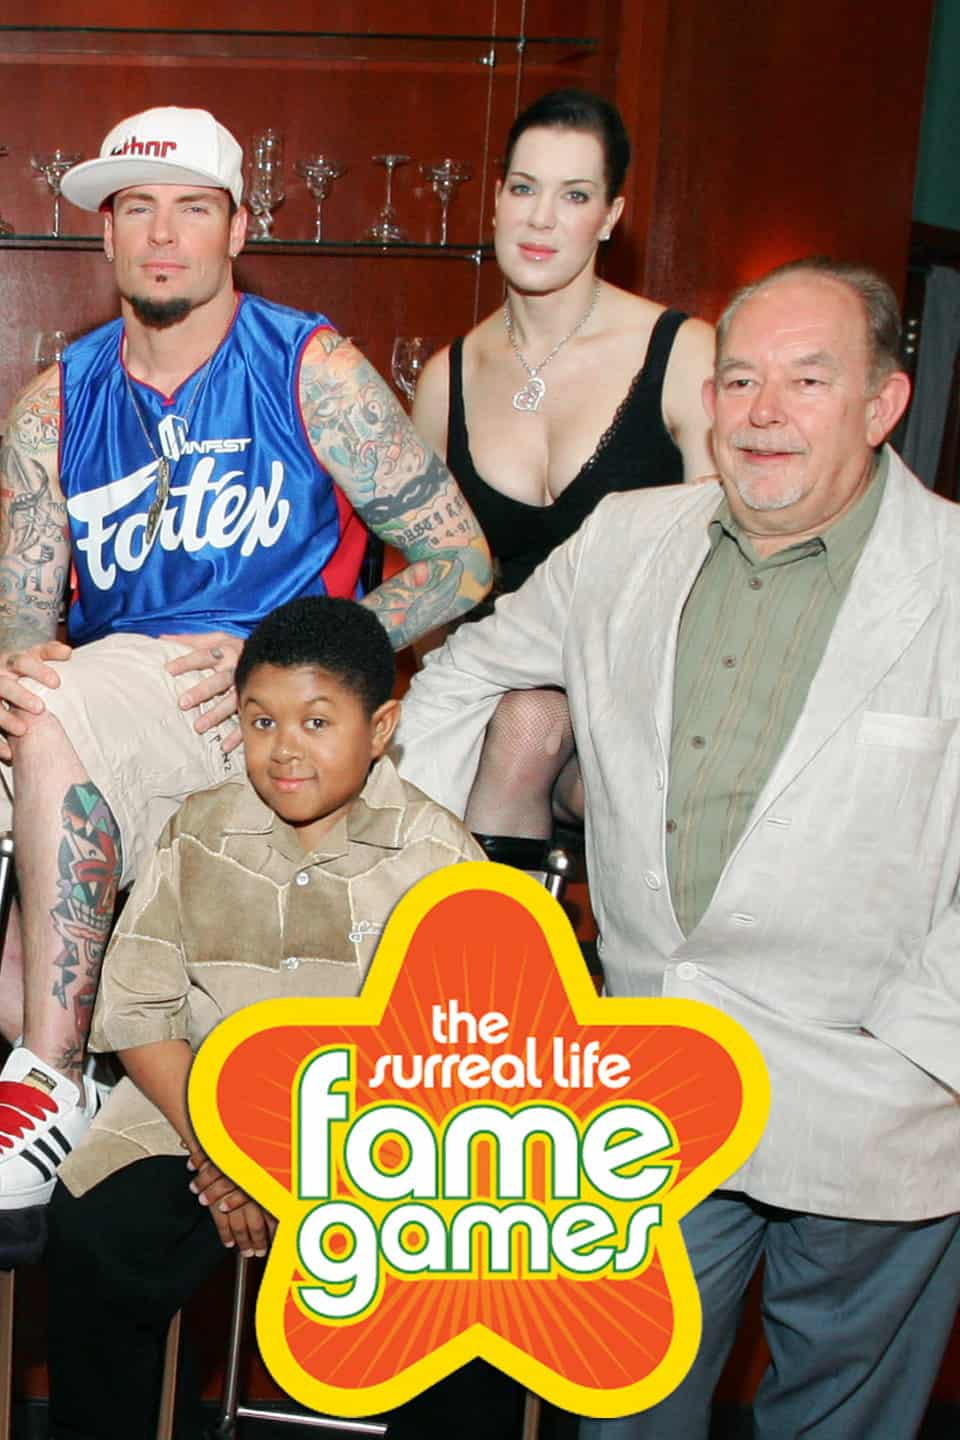 The Surreal Life: Fame Games, 2007